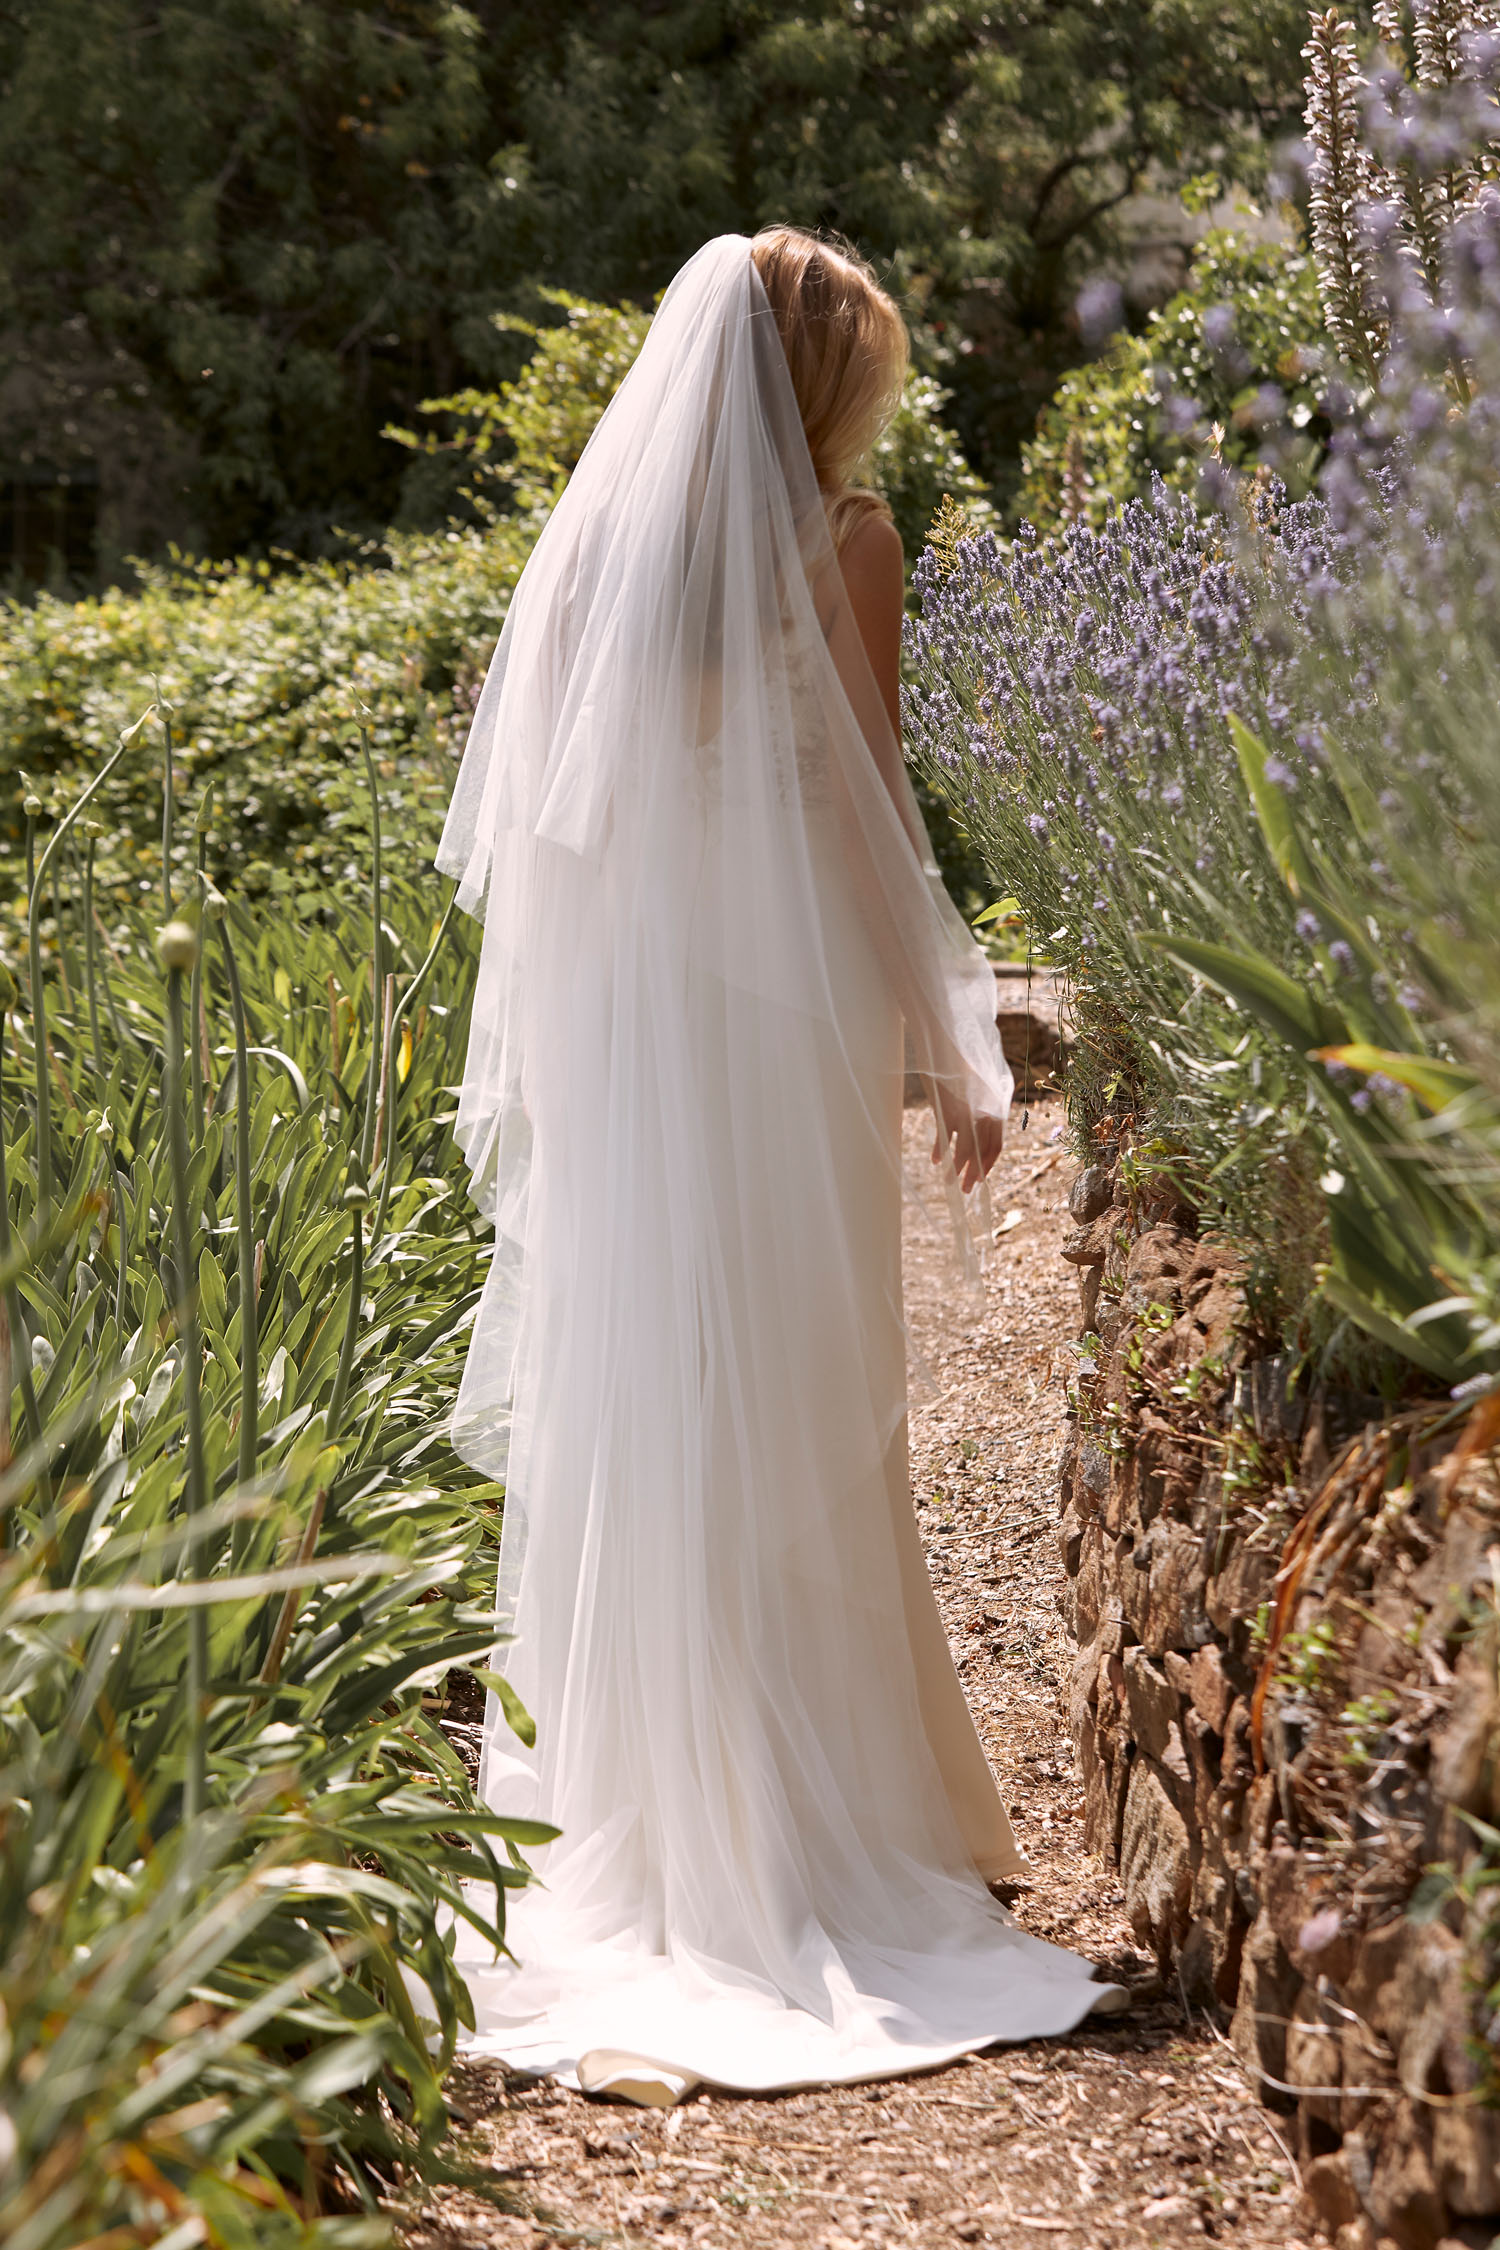 CODY-ML21015-FULL-LENGTH-FITTED-CREPE-SKIRT-GOWN-WITH-ILLUSION-FLORAL-LACE-BODICE-AND-STRAPS-ZIPPER-CLOSURE-MATCHING-VEIL-WEDDING-DRESS-MADI-LANE-BRIDAL-3